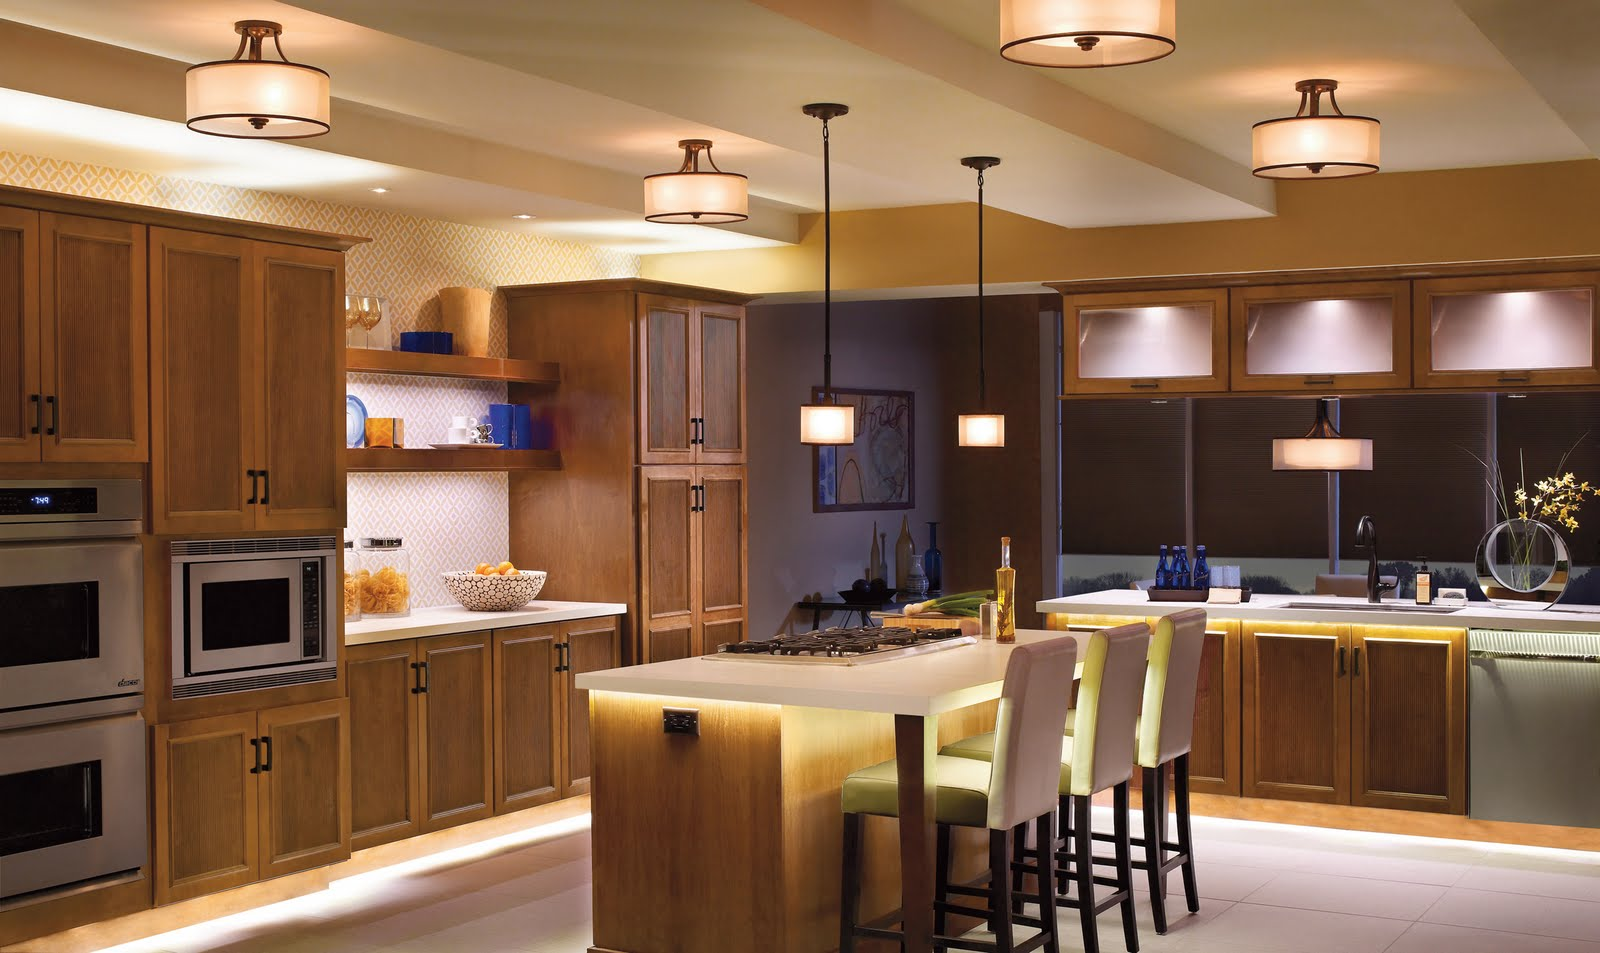 kitchen design lighting. Kitchen Lighting Design. 76 Design N H